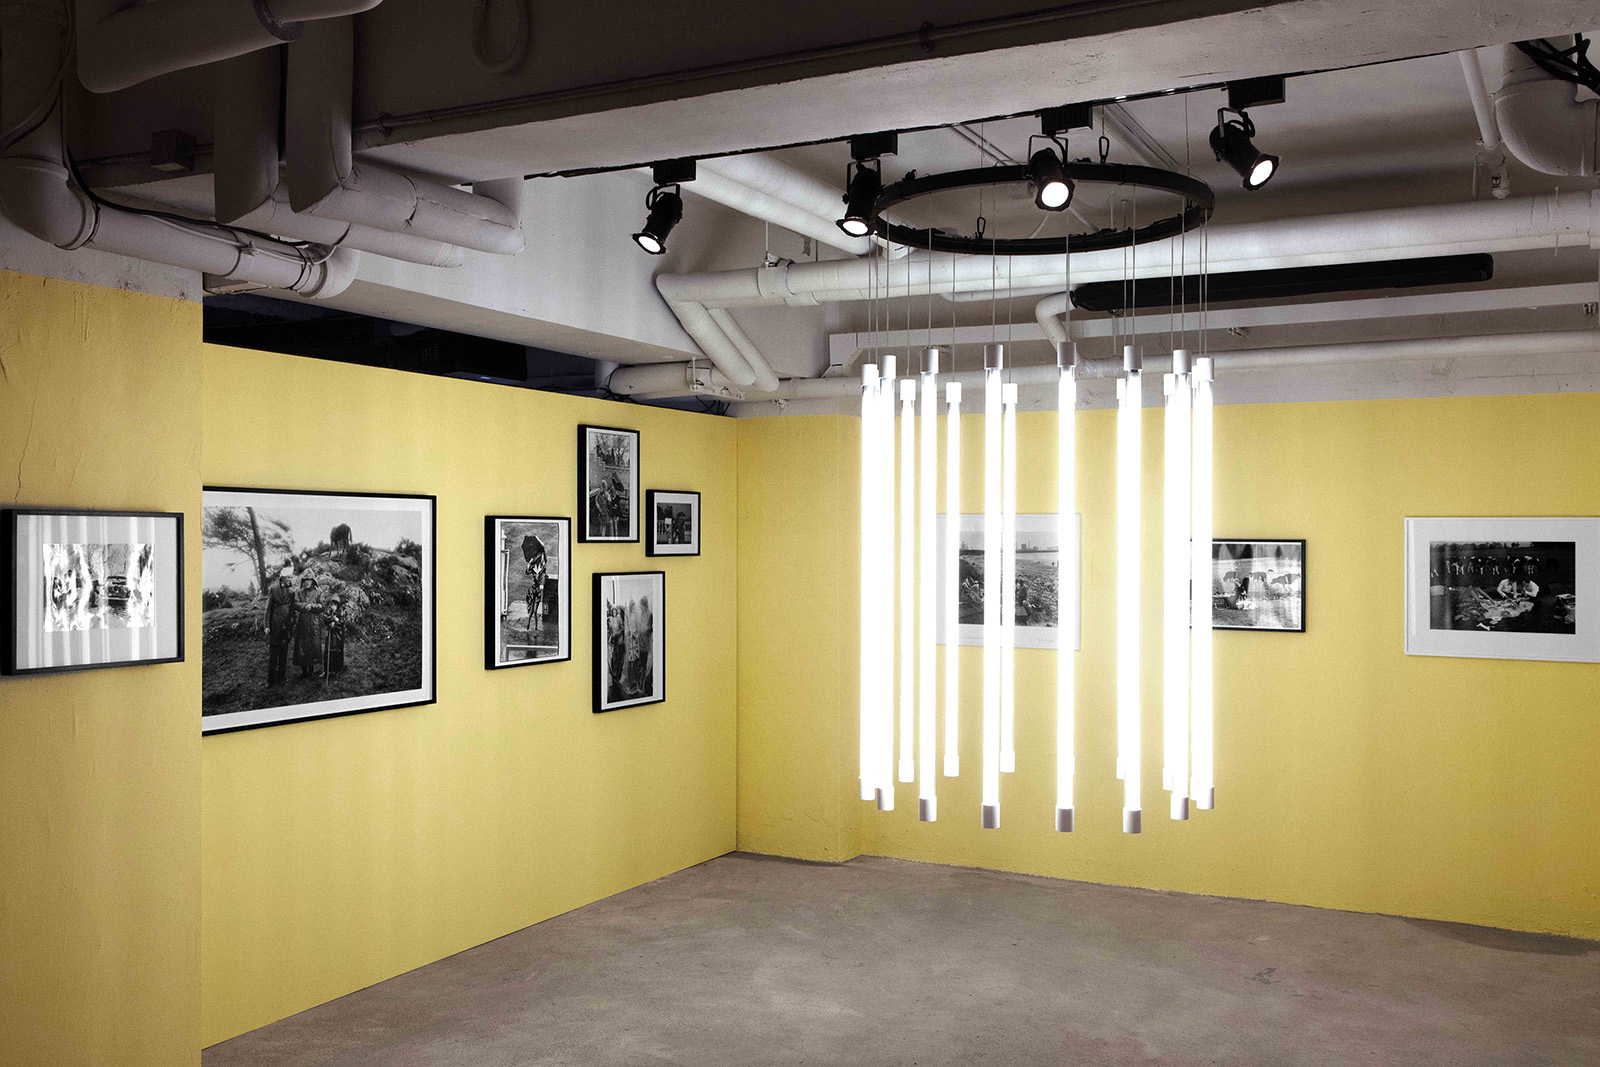 Burberrys-Here-We-Are-photography-exhibition-in-Hong-Kong_005.jpg